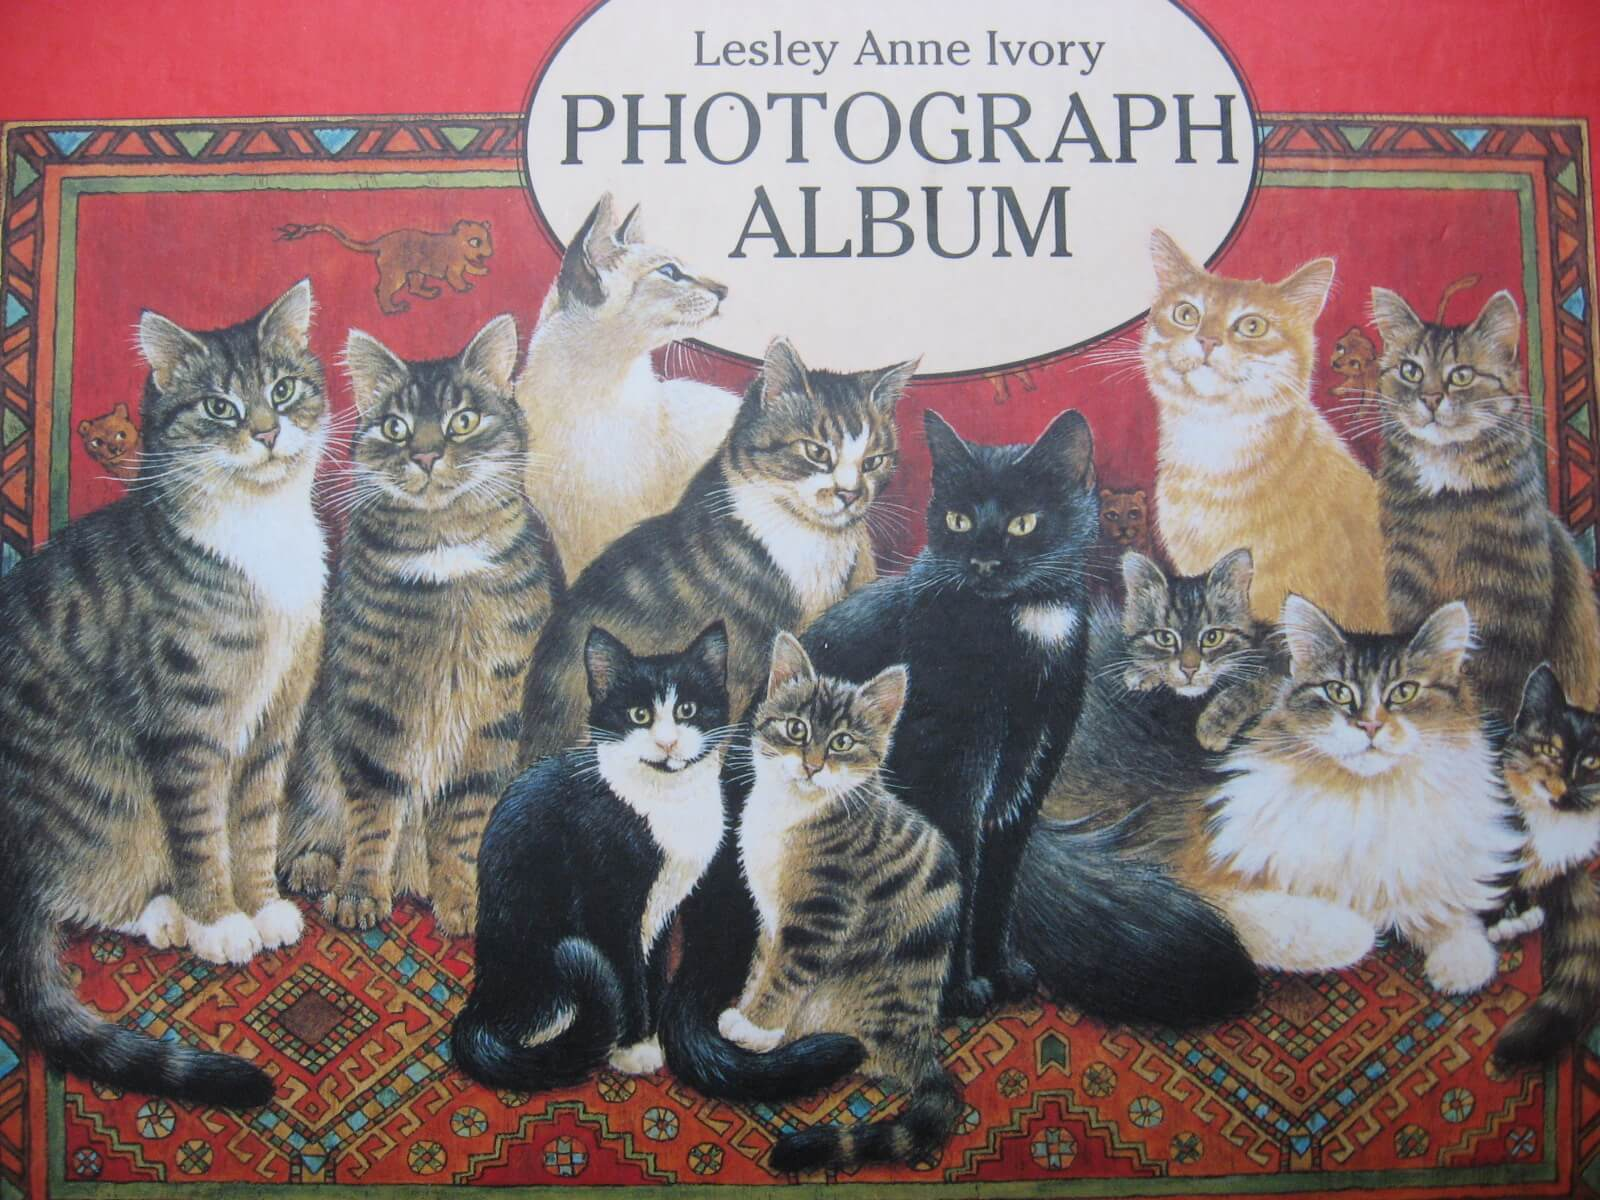 Lesley Anne Ivory Cat Lover Photograph Album_Cl_PumpjackPiddlewick